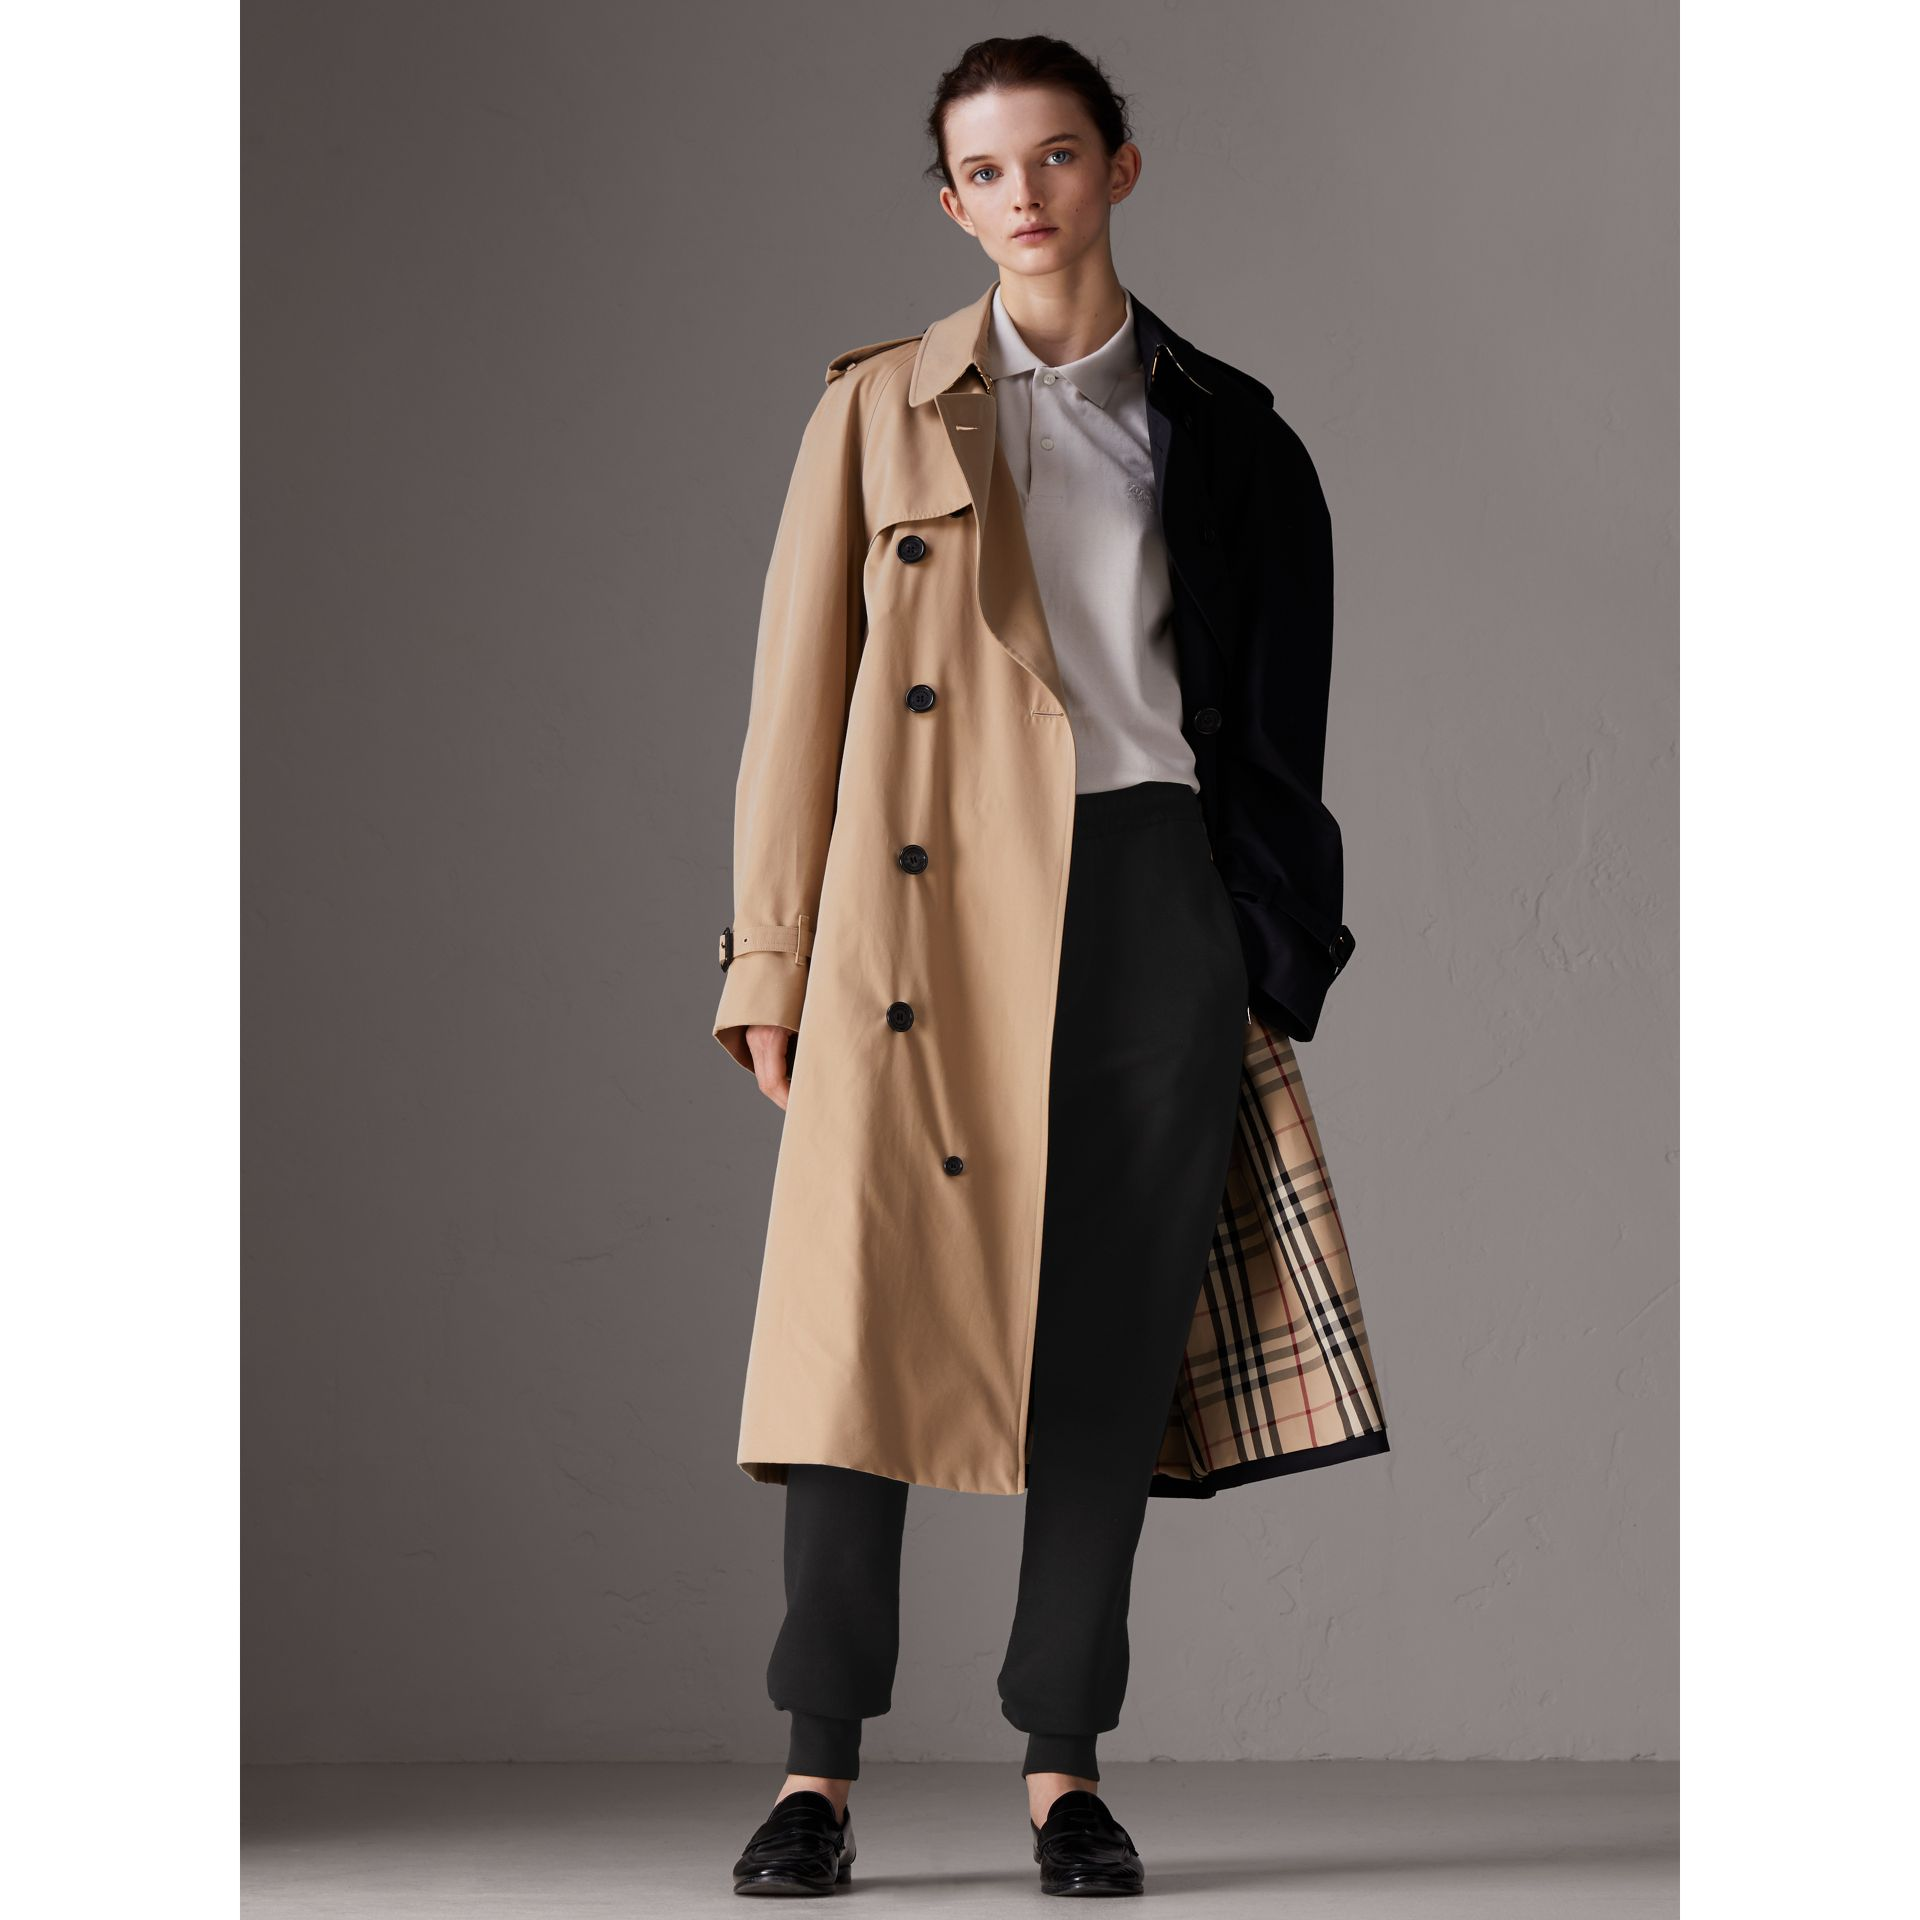 Gosha x Burberry Two-tone Trench Coat in Honey - Men | Burberry United States - gallery image 3